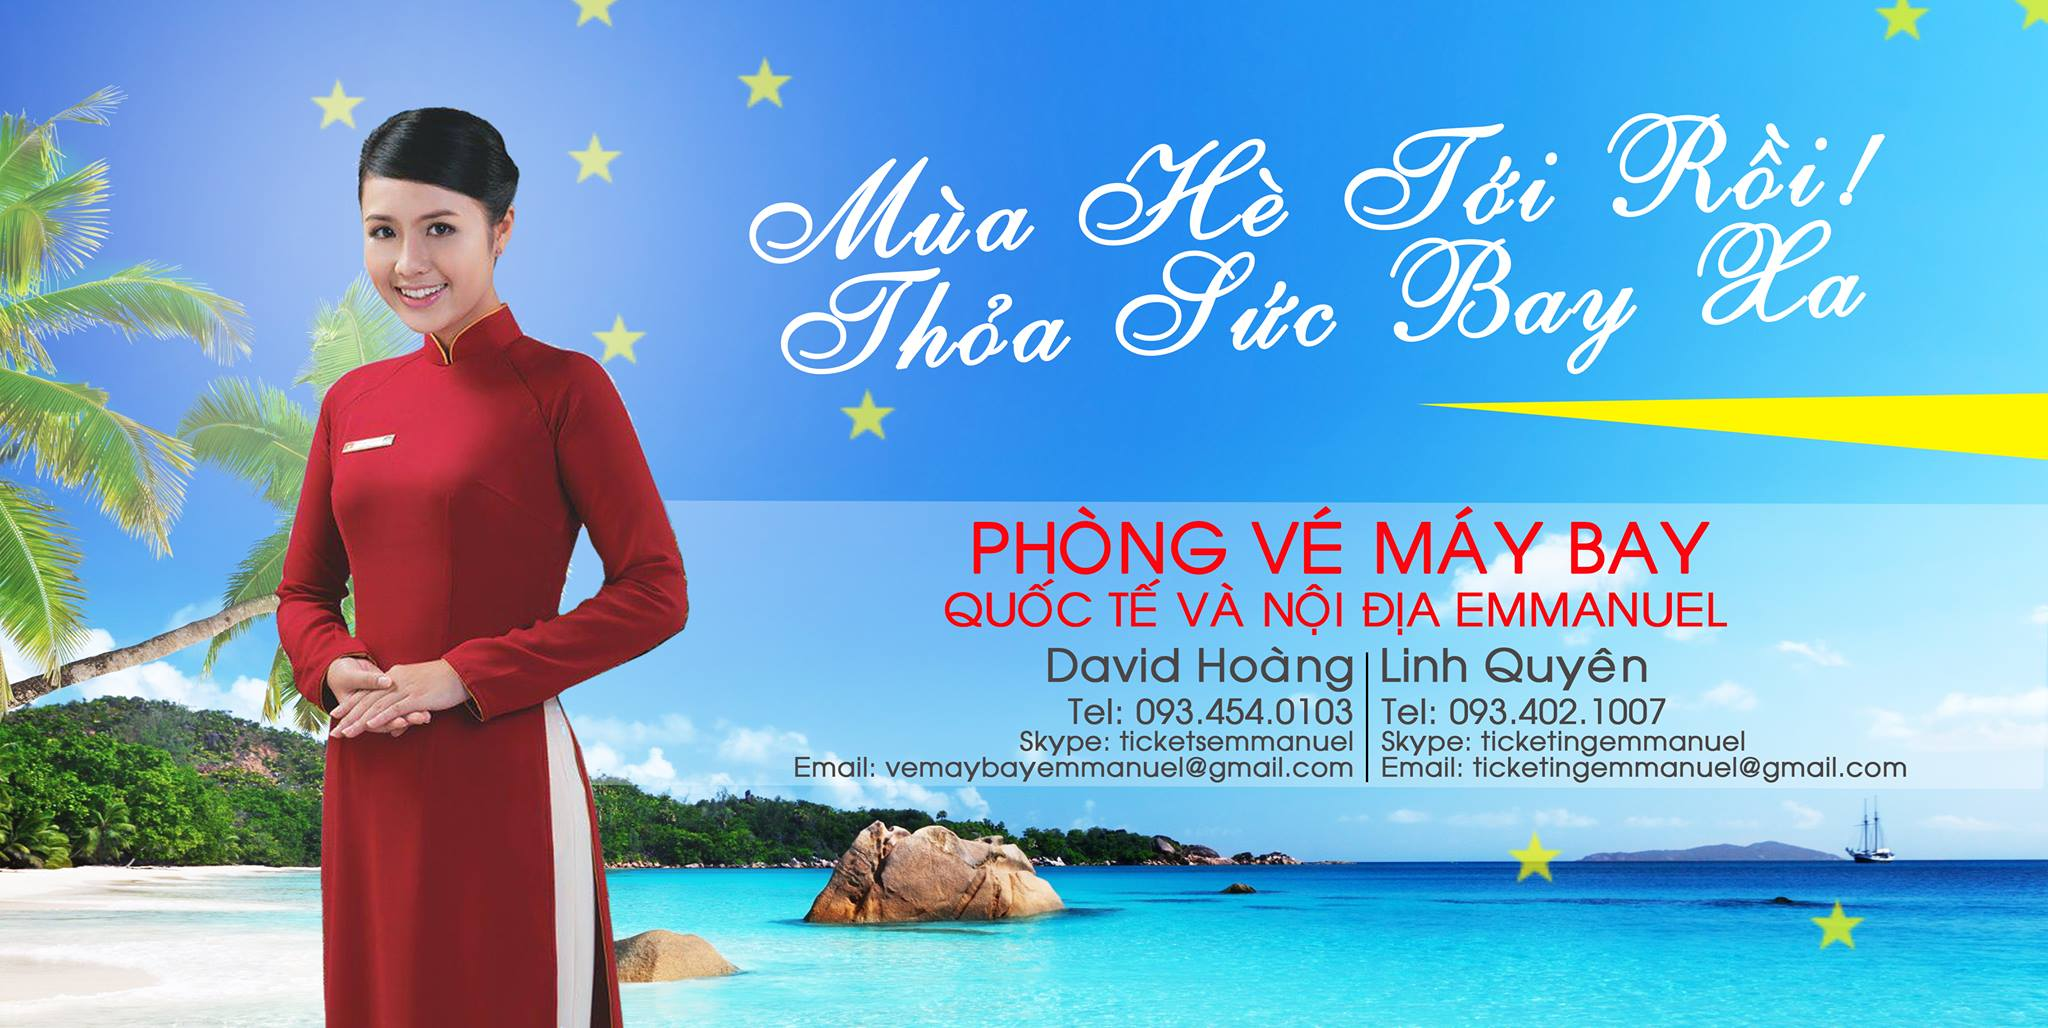 phong ve may bay gia re